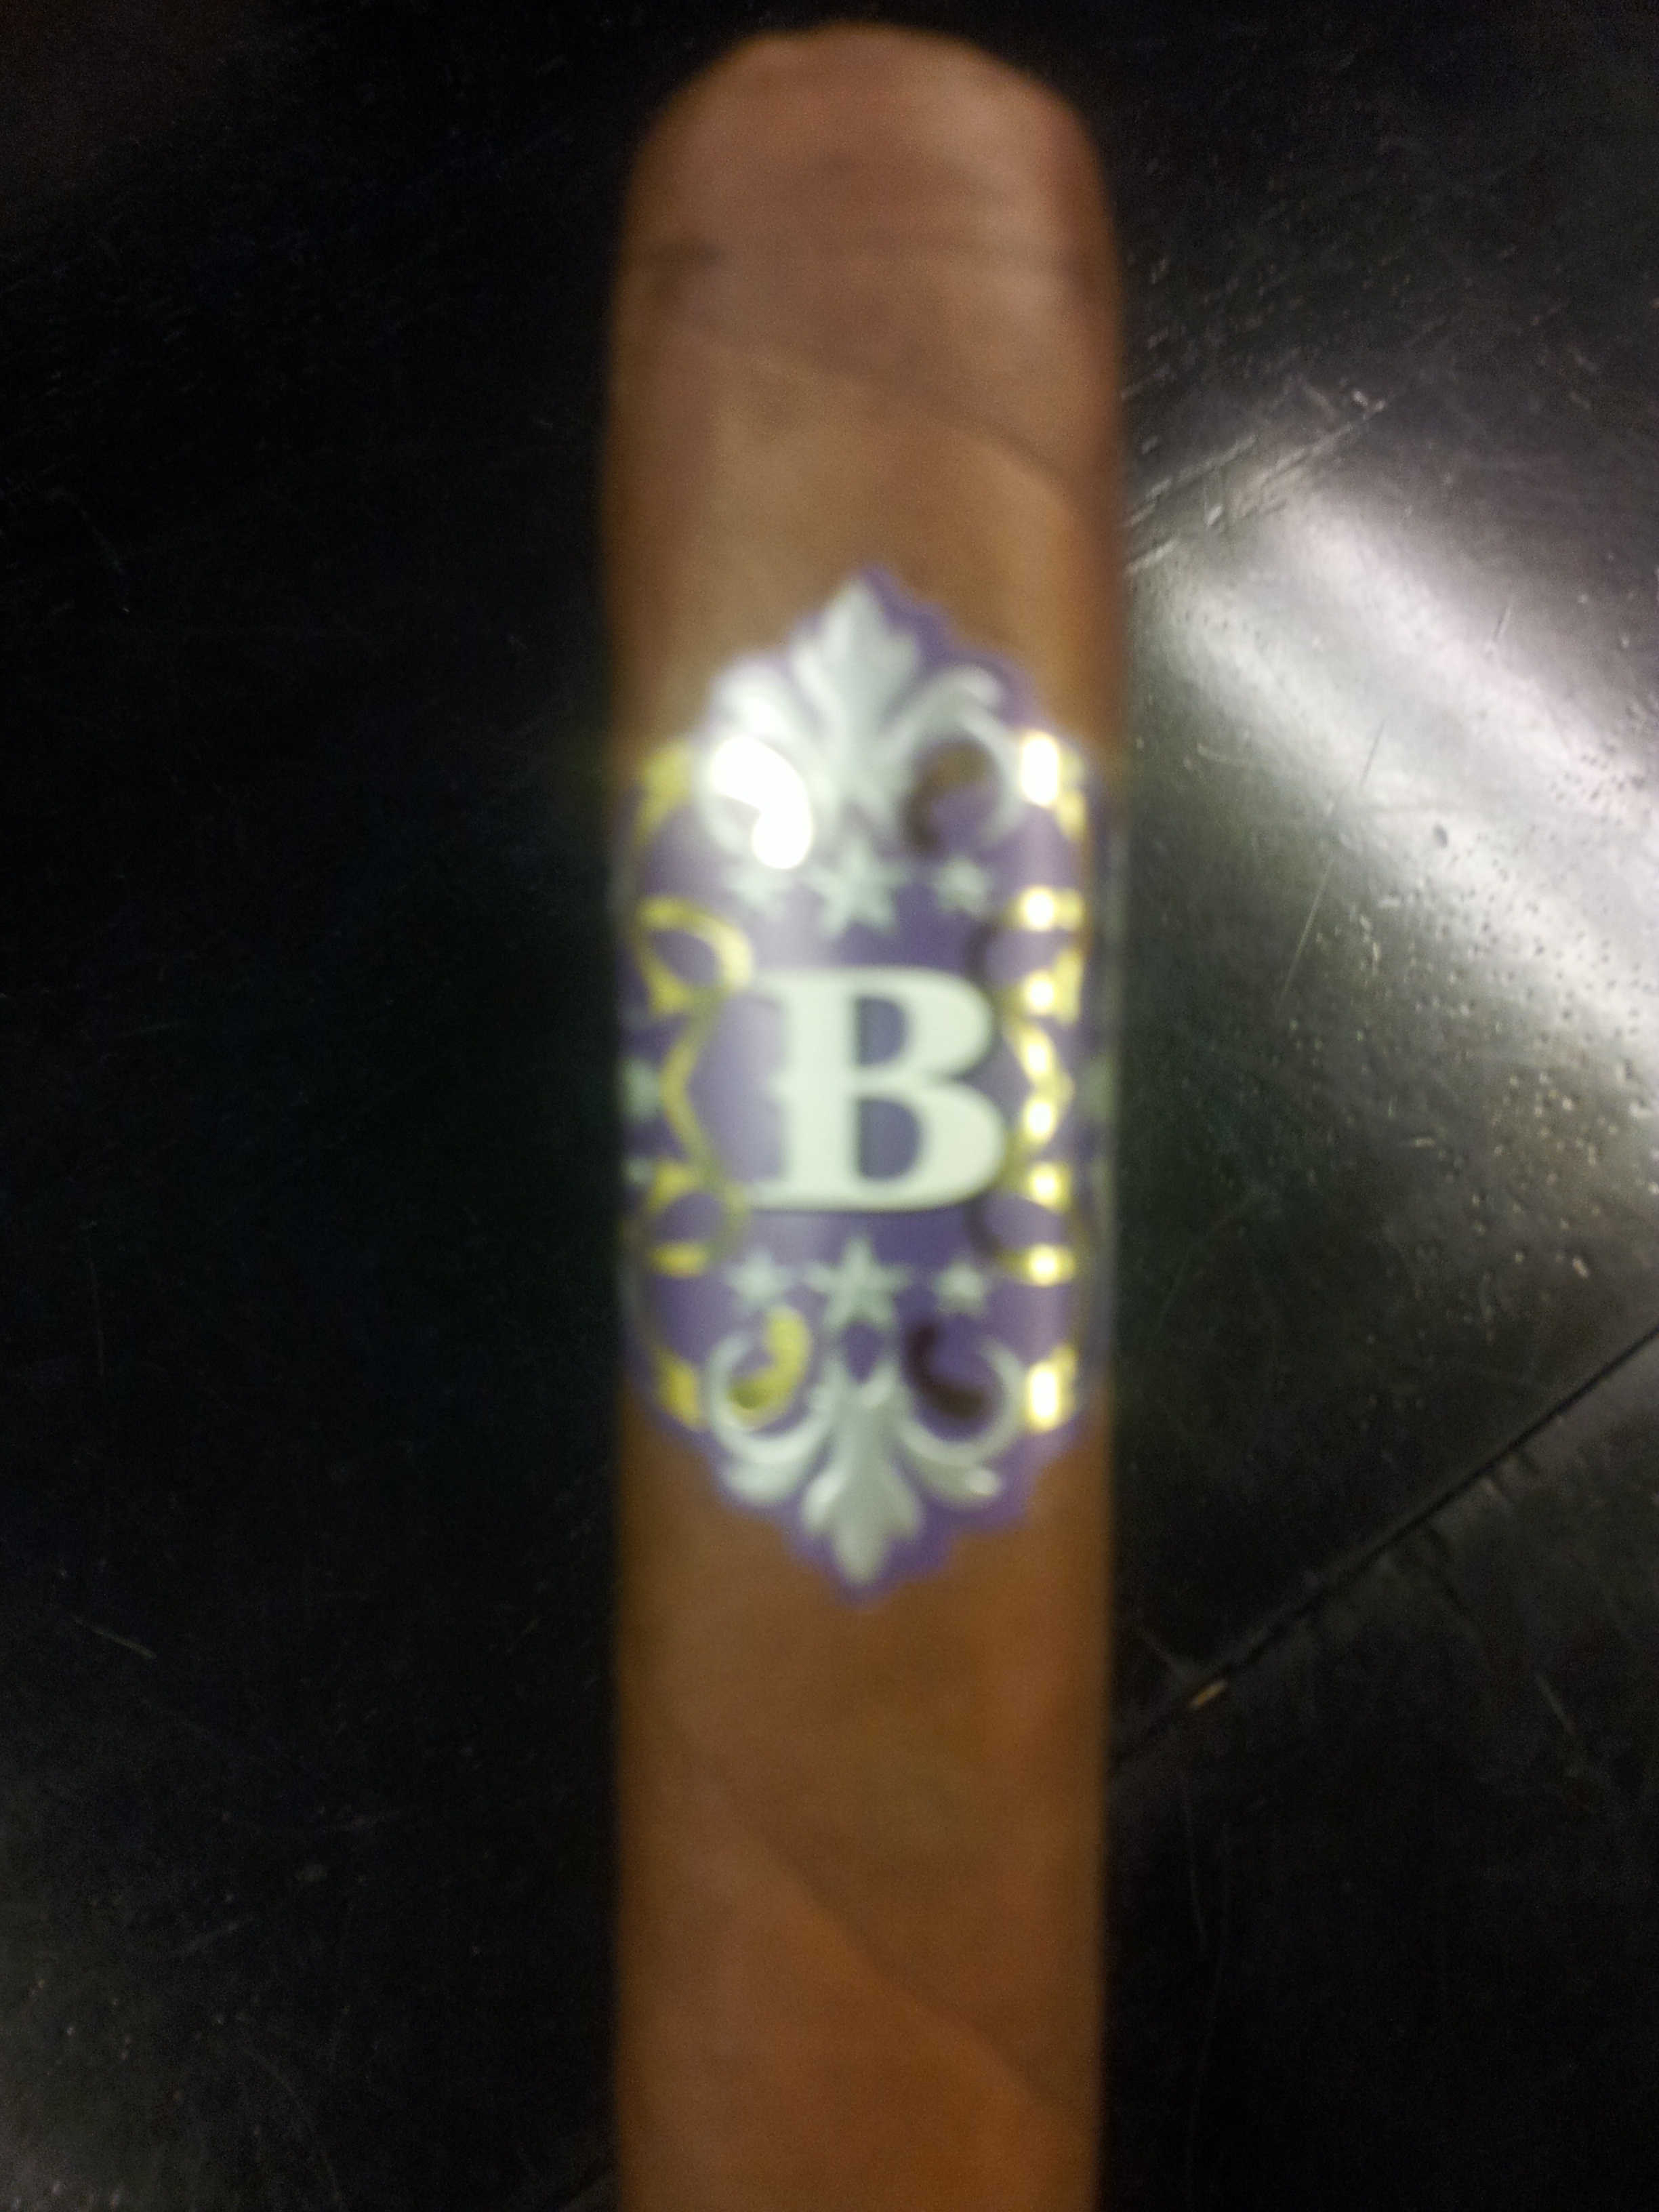 Barroco by DiFazio – Cigar Review